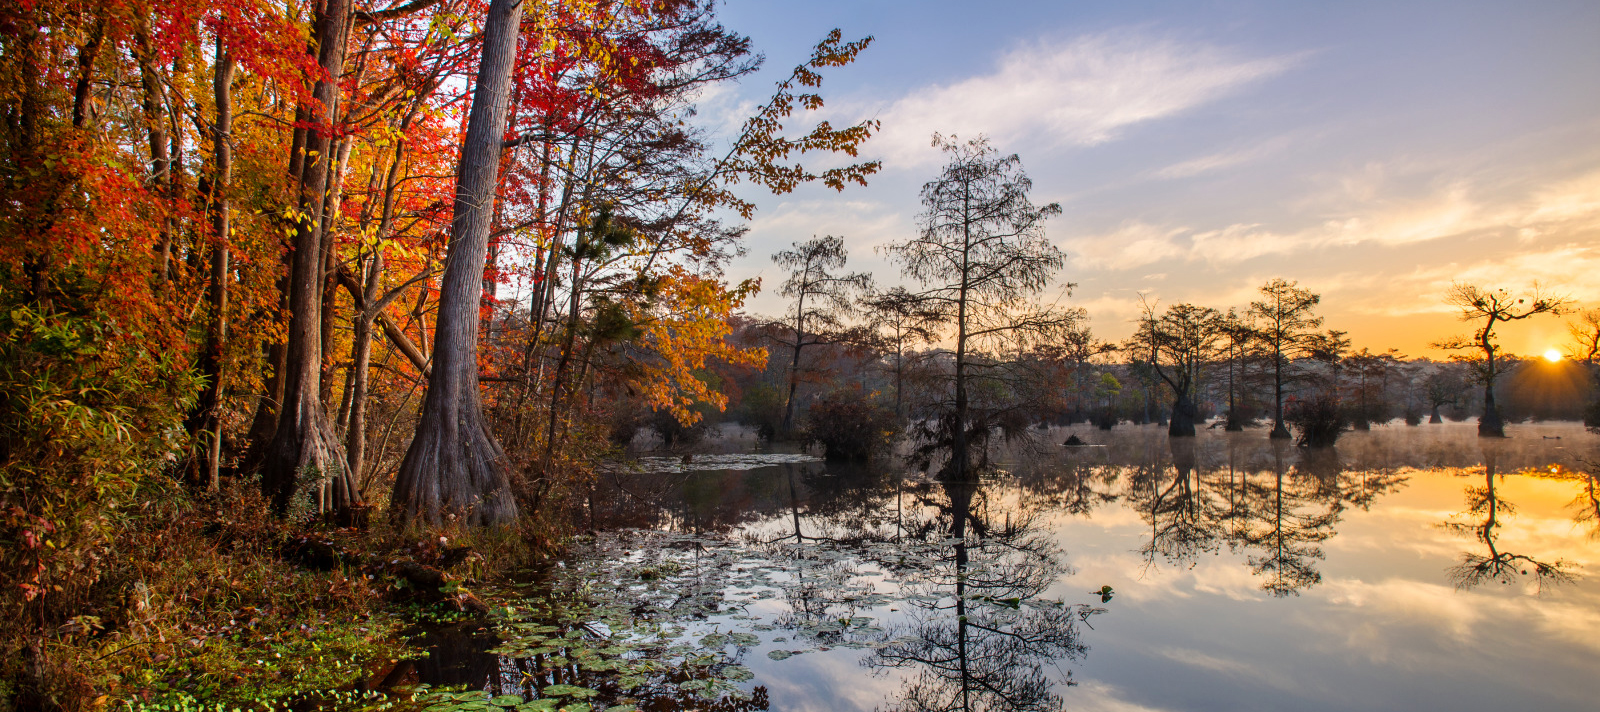 Merchant's Mill Pond, fall foliage and cypress trees with reflection on water at dusk